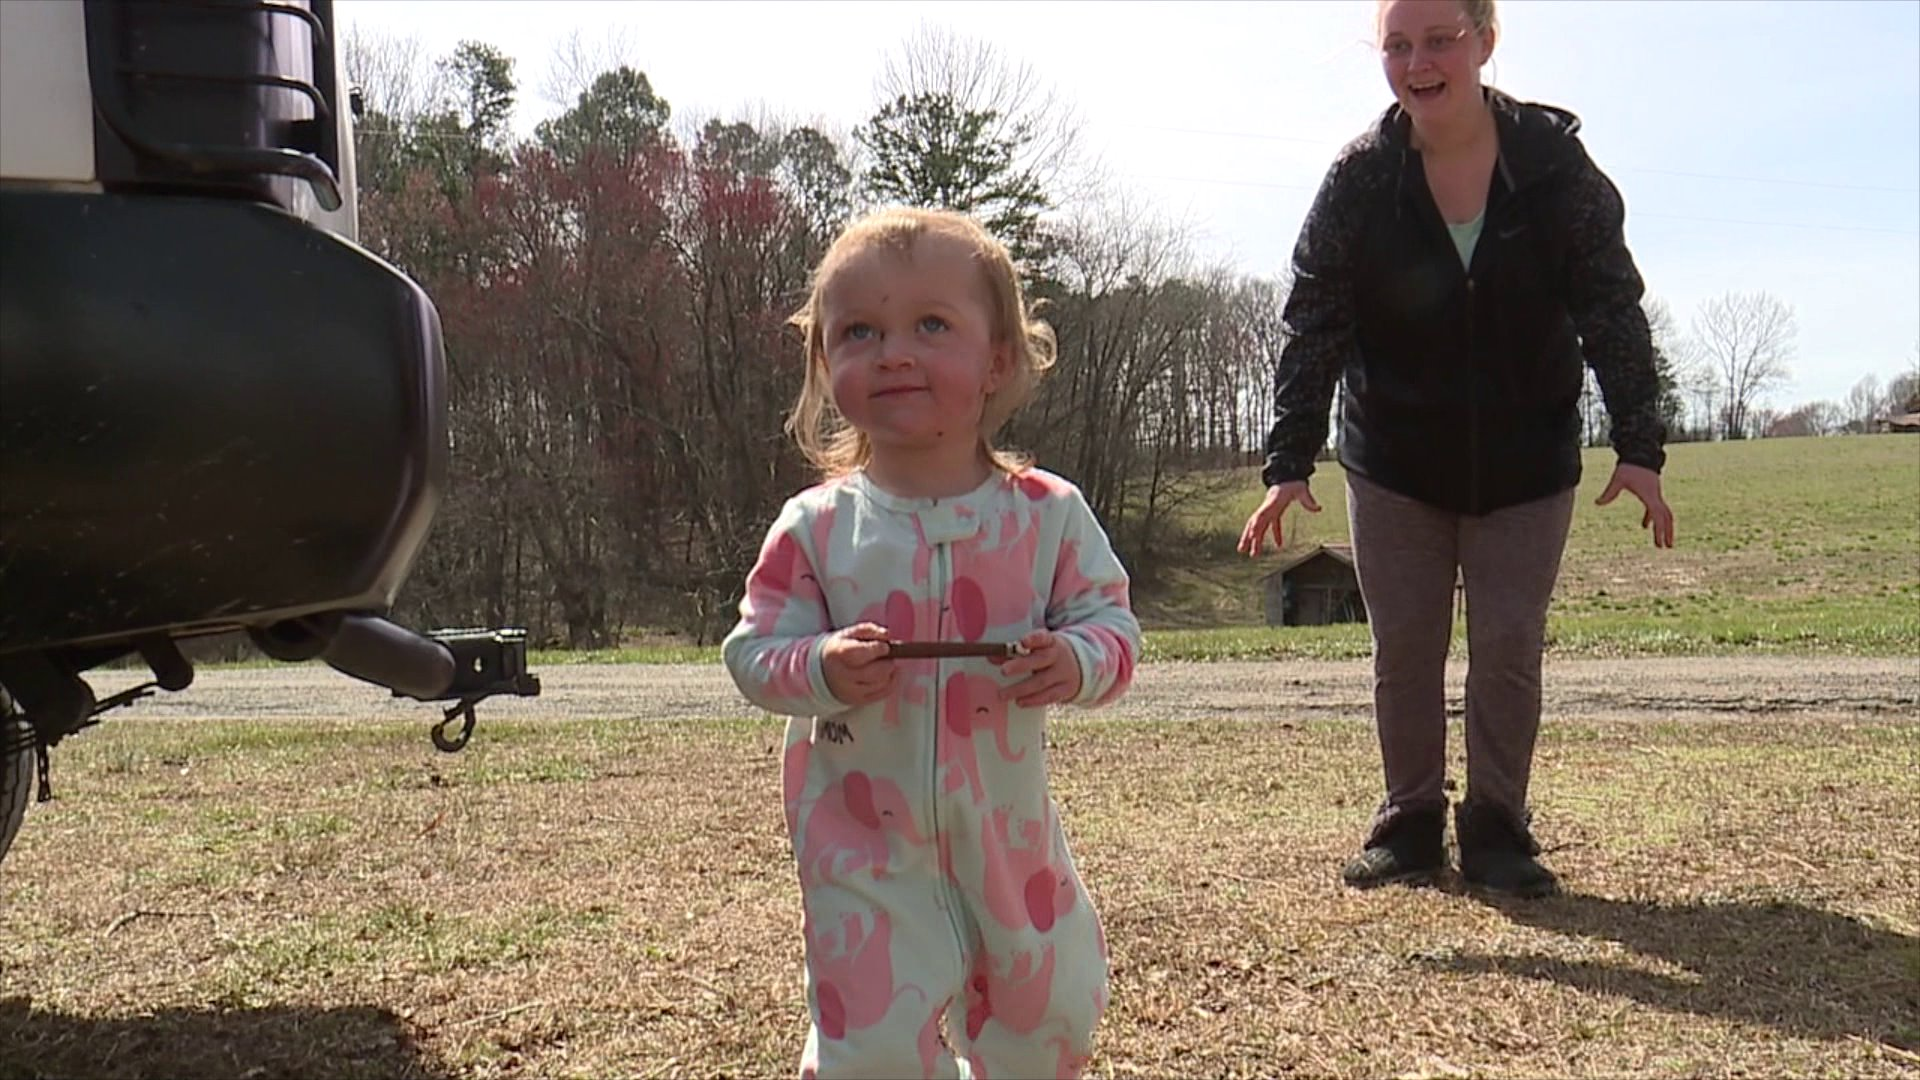 Mom recalls moment 2-year-old daughter was saved by Surry County first responders when a large tree fell and pinned her in bed